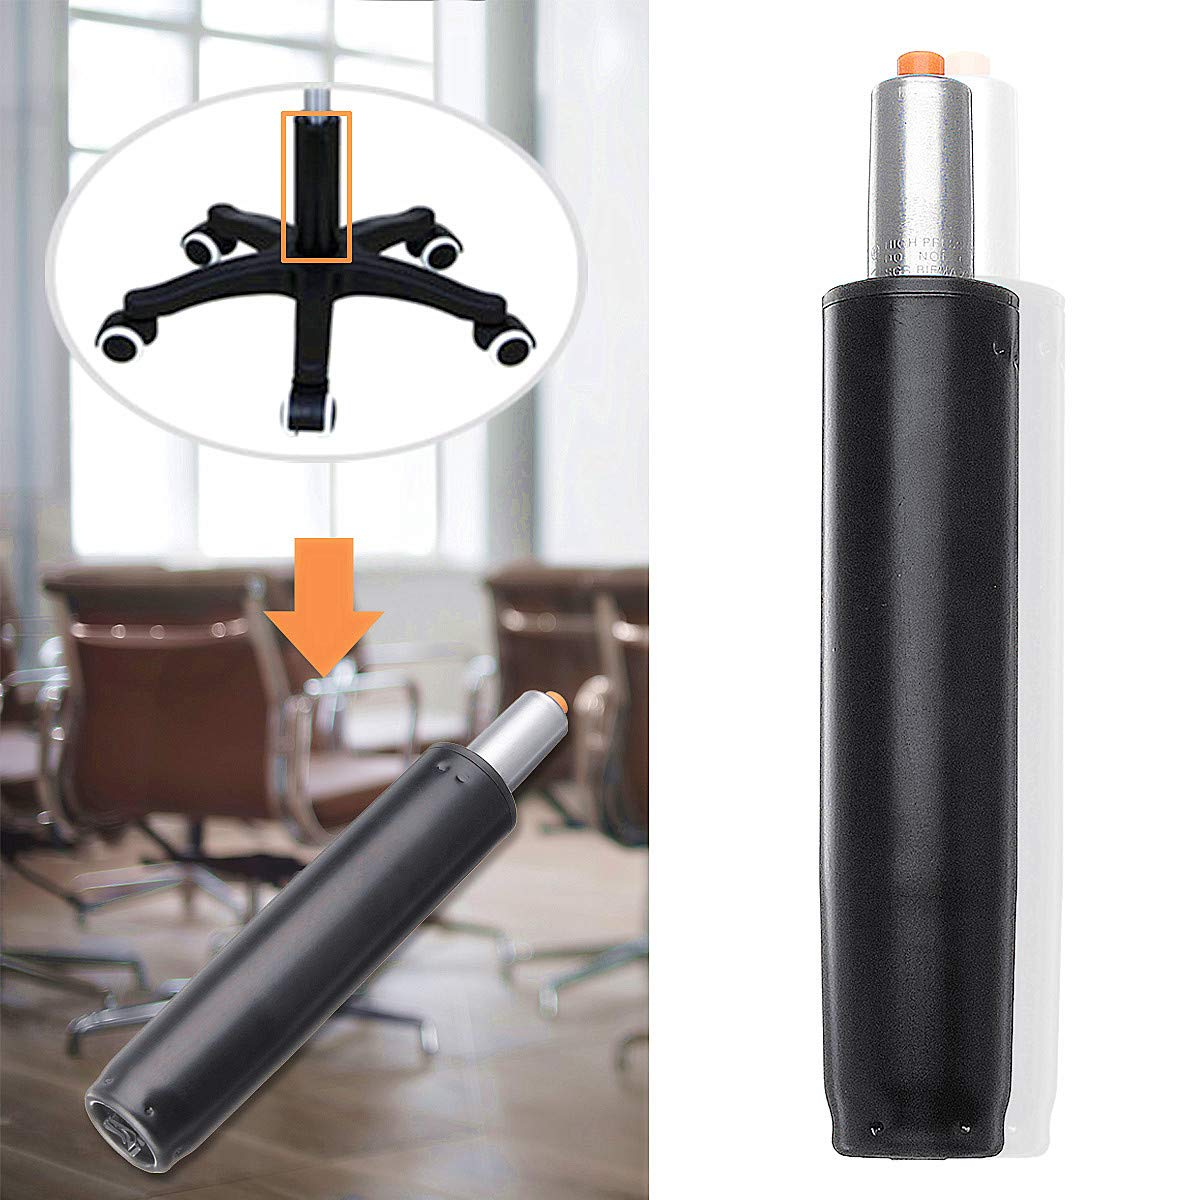 Fevas 11'' Heavy Pneumatic Rod Gas Lift Cylinder Chair Replacement Accessories Pneumatic Parts for Office Bar Computer Chairs